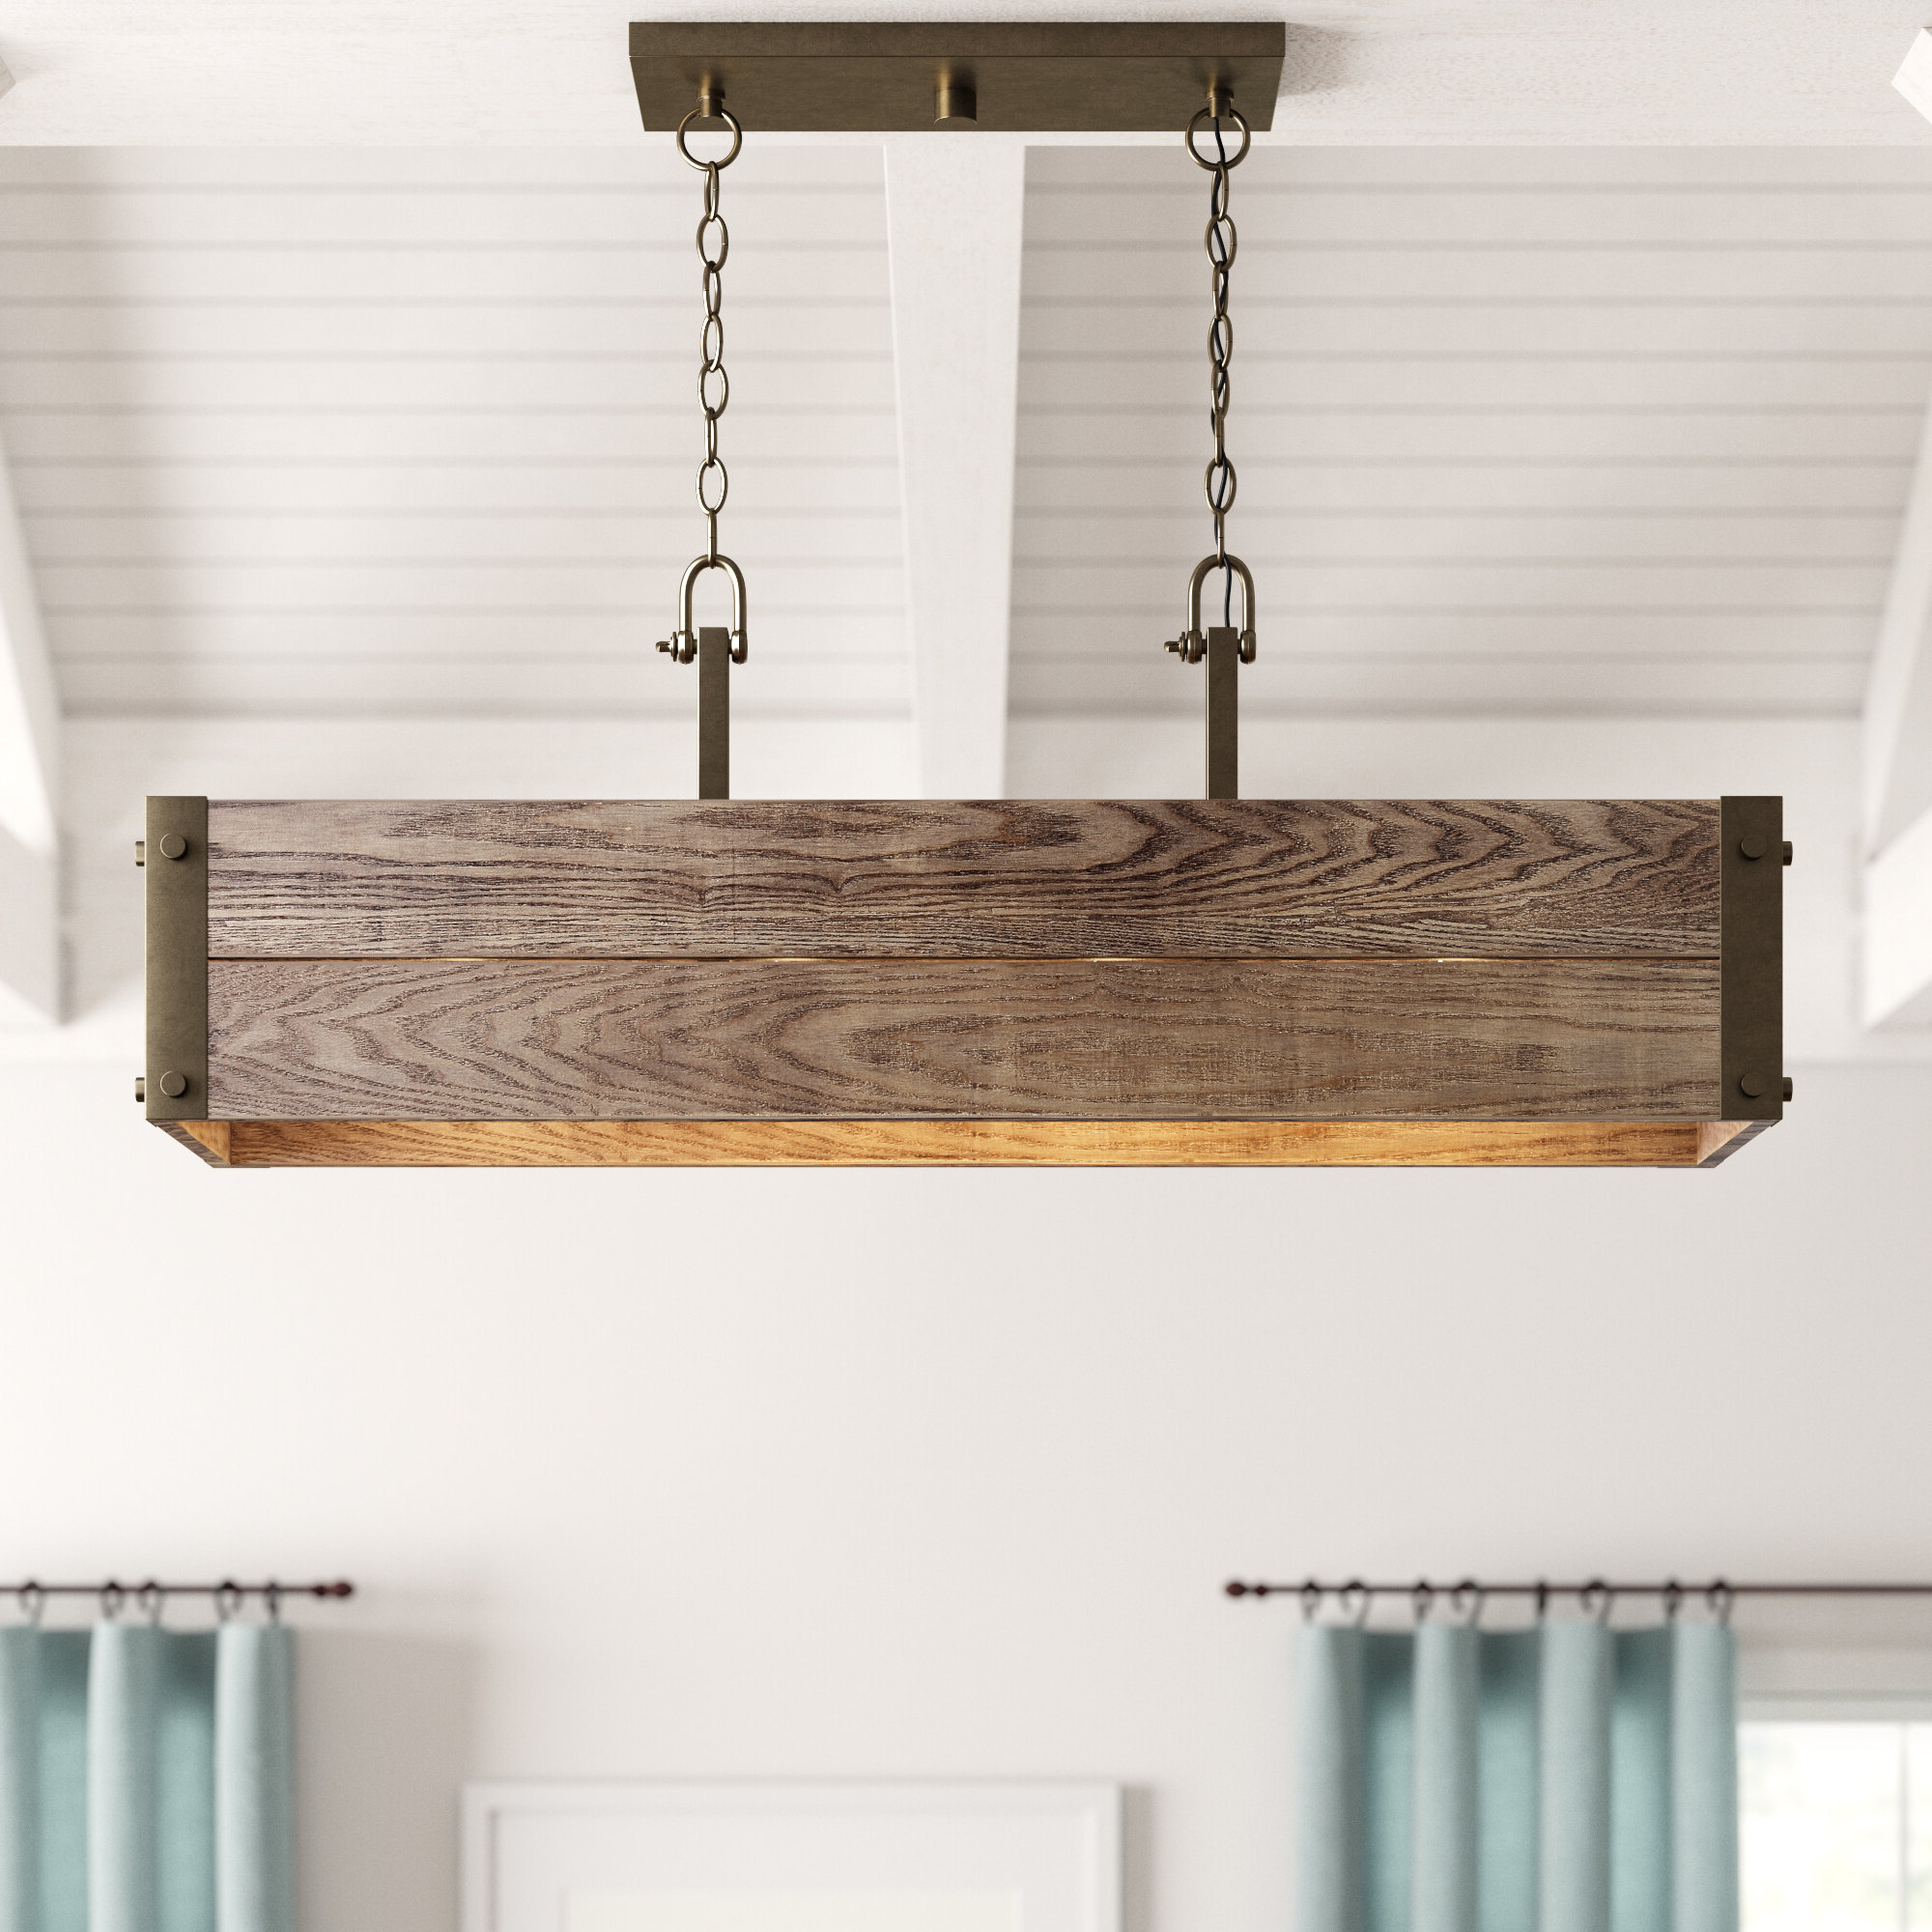 Most Recent Ariel 2 Light Kitchen Island Dome Pendants In Cathey 4 Light Kitchen Island Linear Pendant (View 13 of 25)